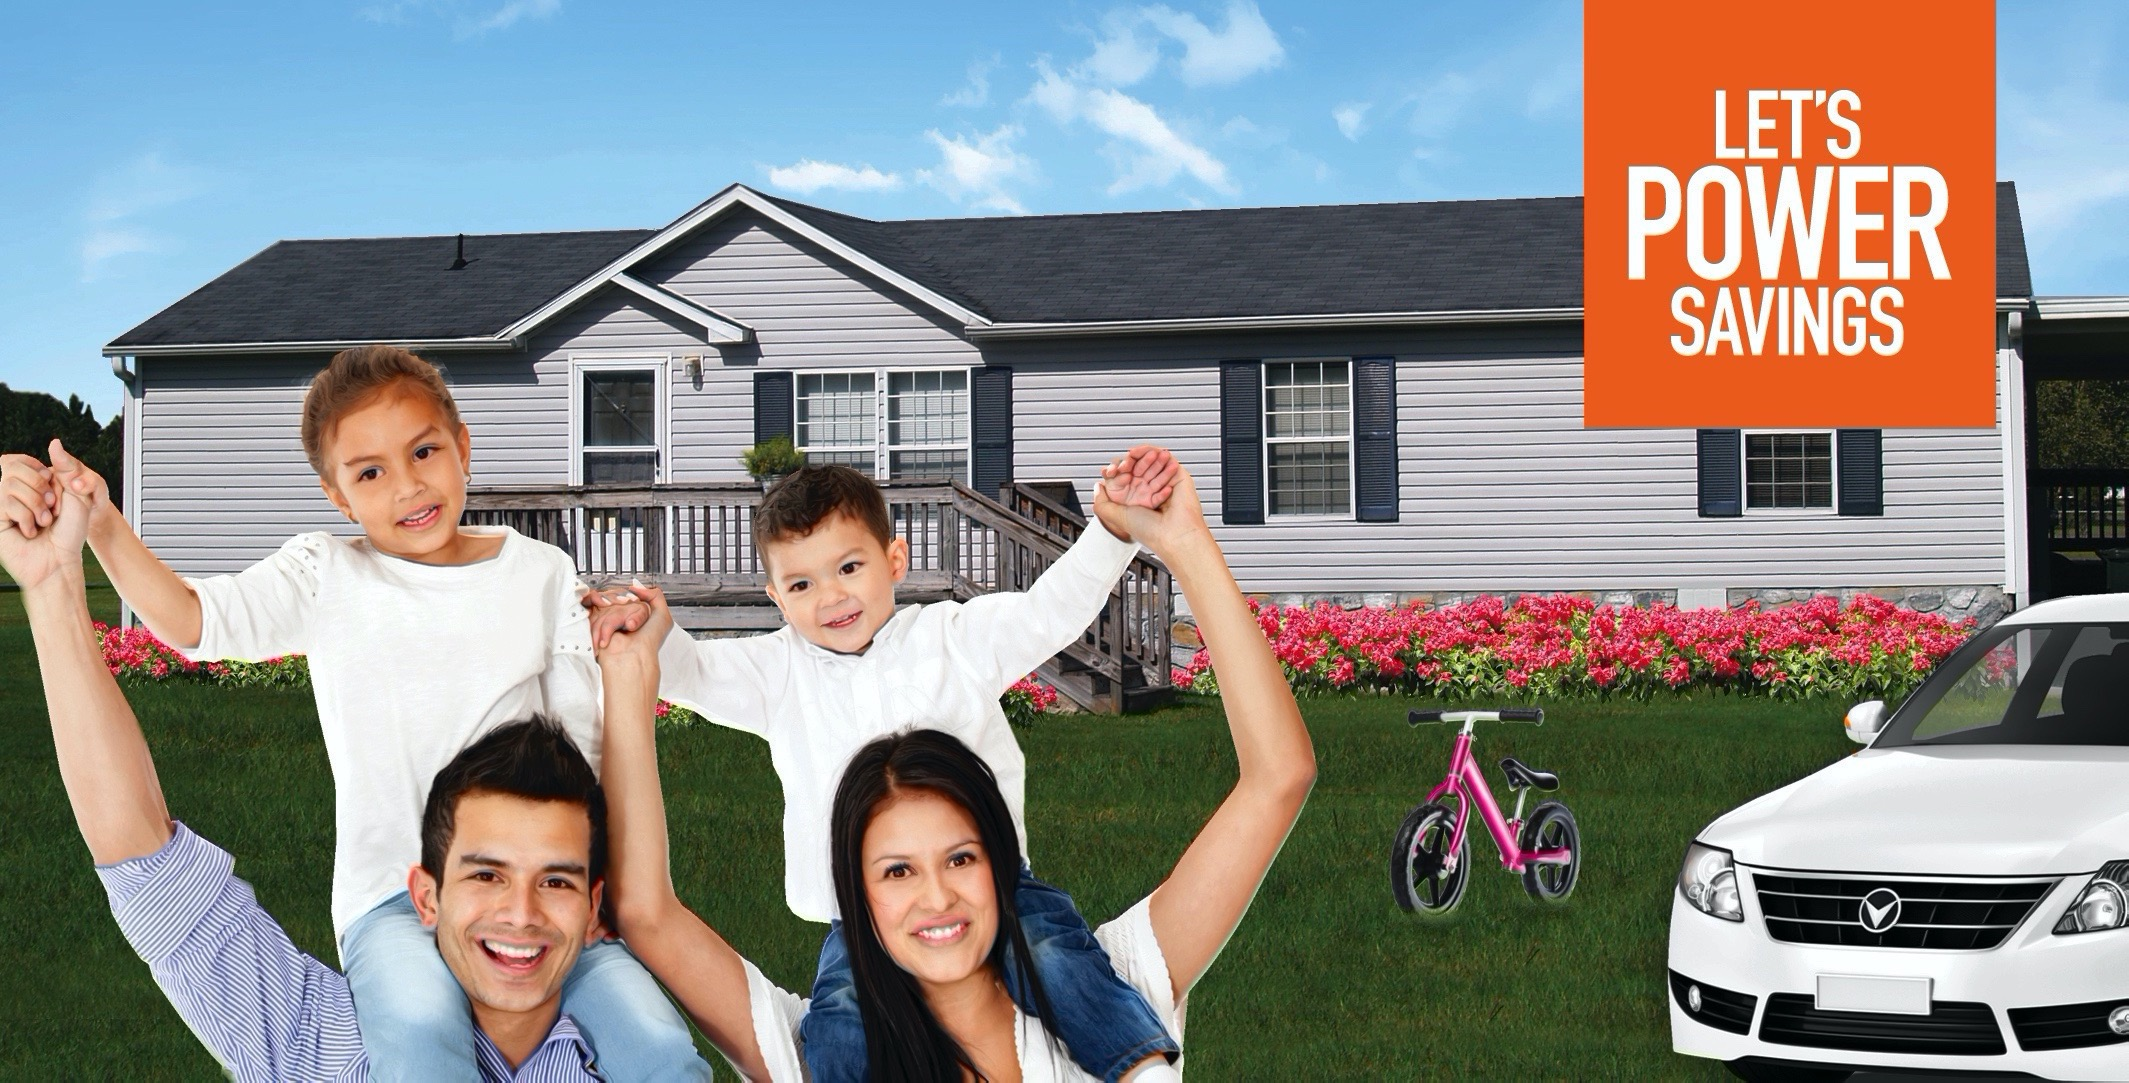 Let's power savings. Happy family standing on lawn outside of house.